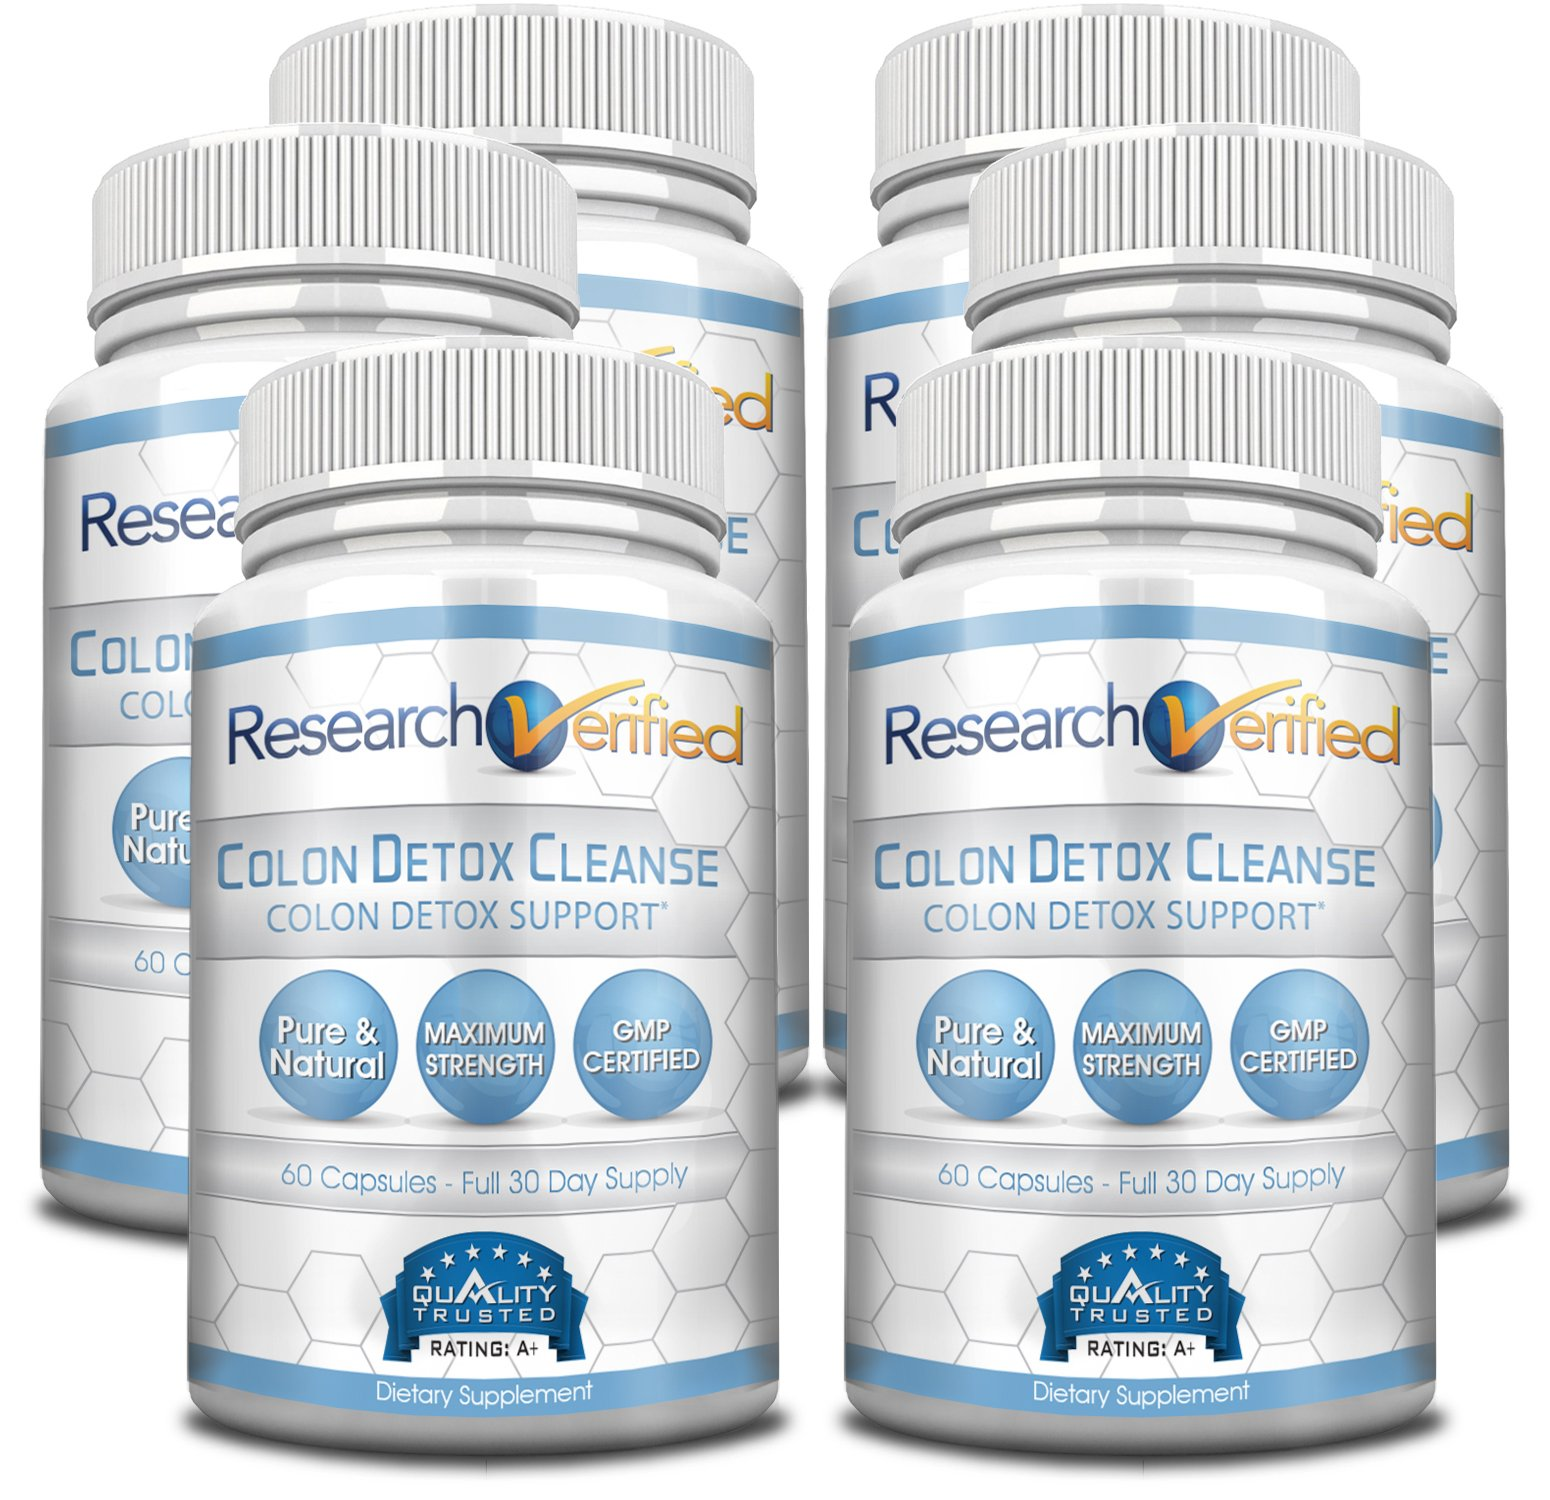 Research Verified Colon Detox Cleanse - #1 Colon Cleansing & Detox Treatment - 100% Natural w/ Probiotics & 19 tested Ingredients - 100% Money Back - 6 Bottles Supply